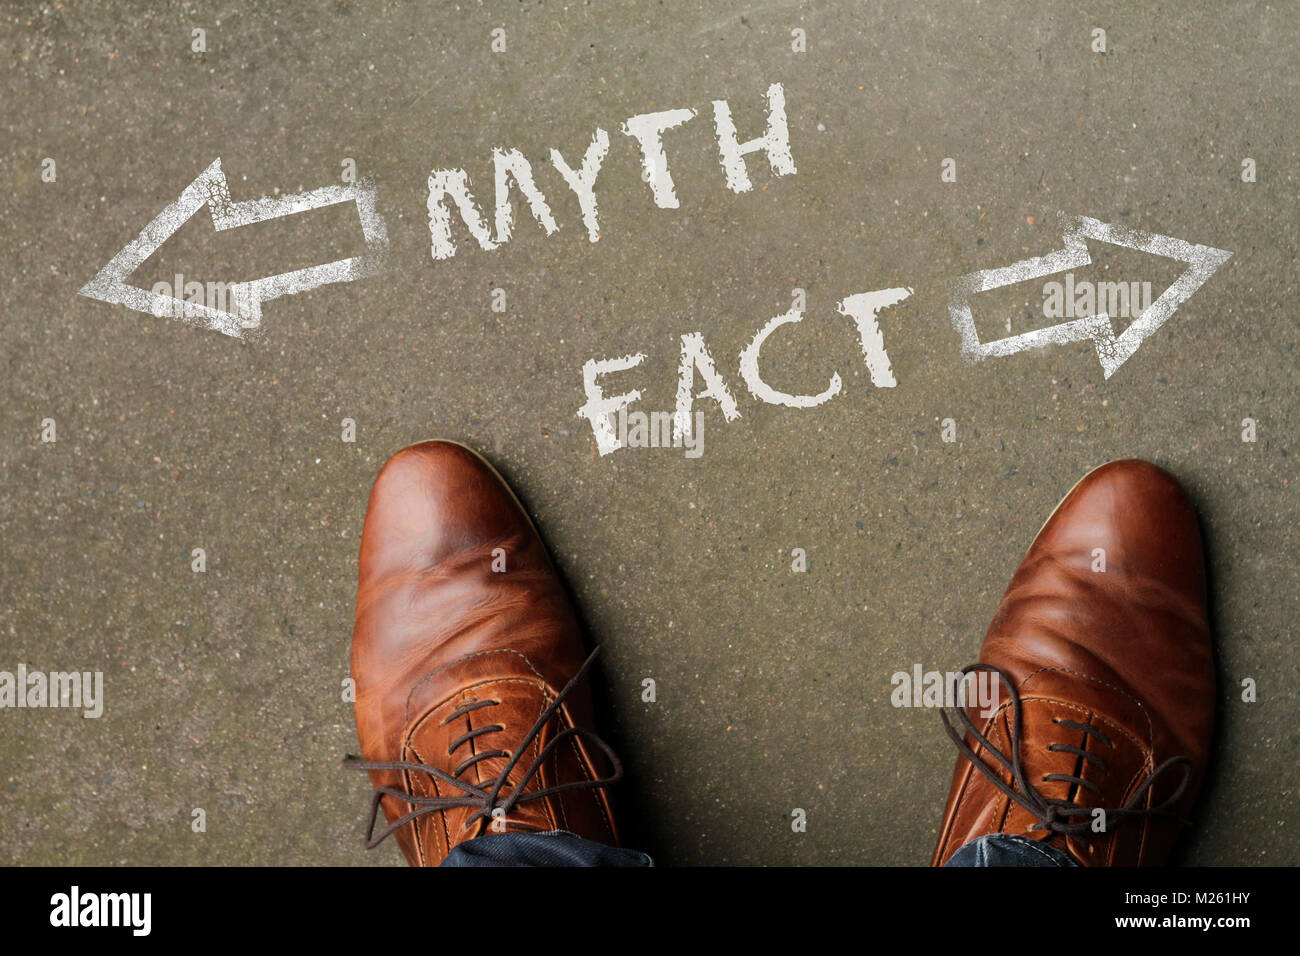 Time to decide: Myth or Fact? - Stock Image